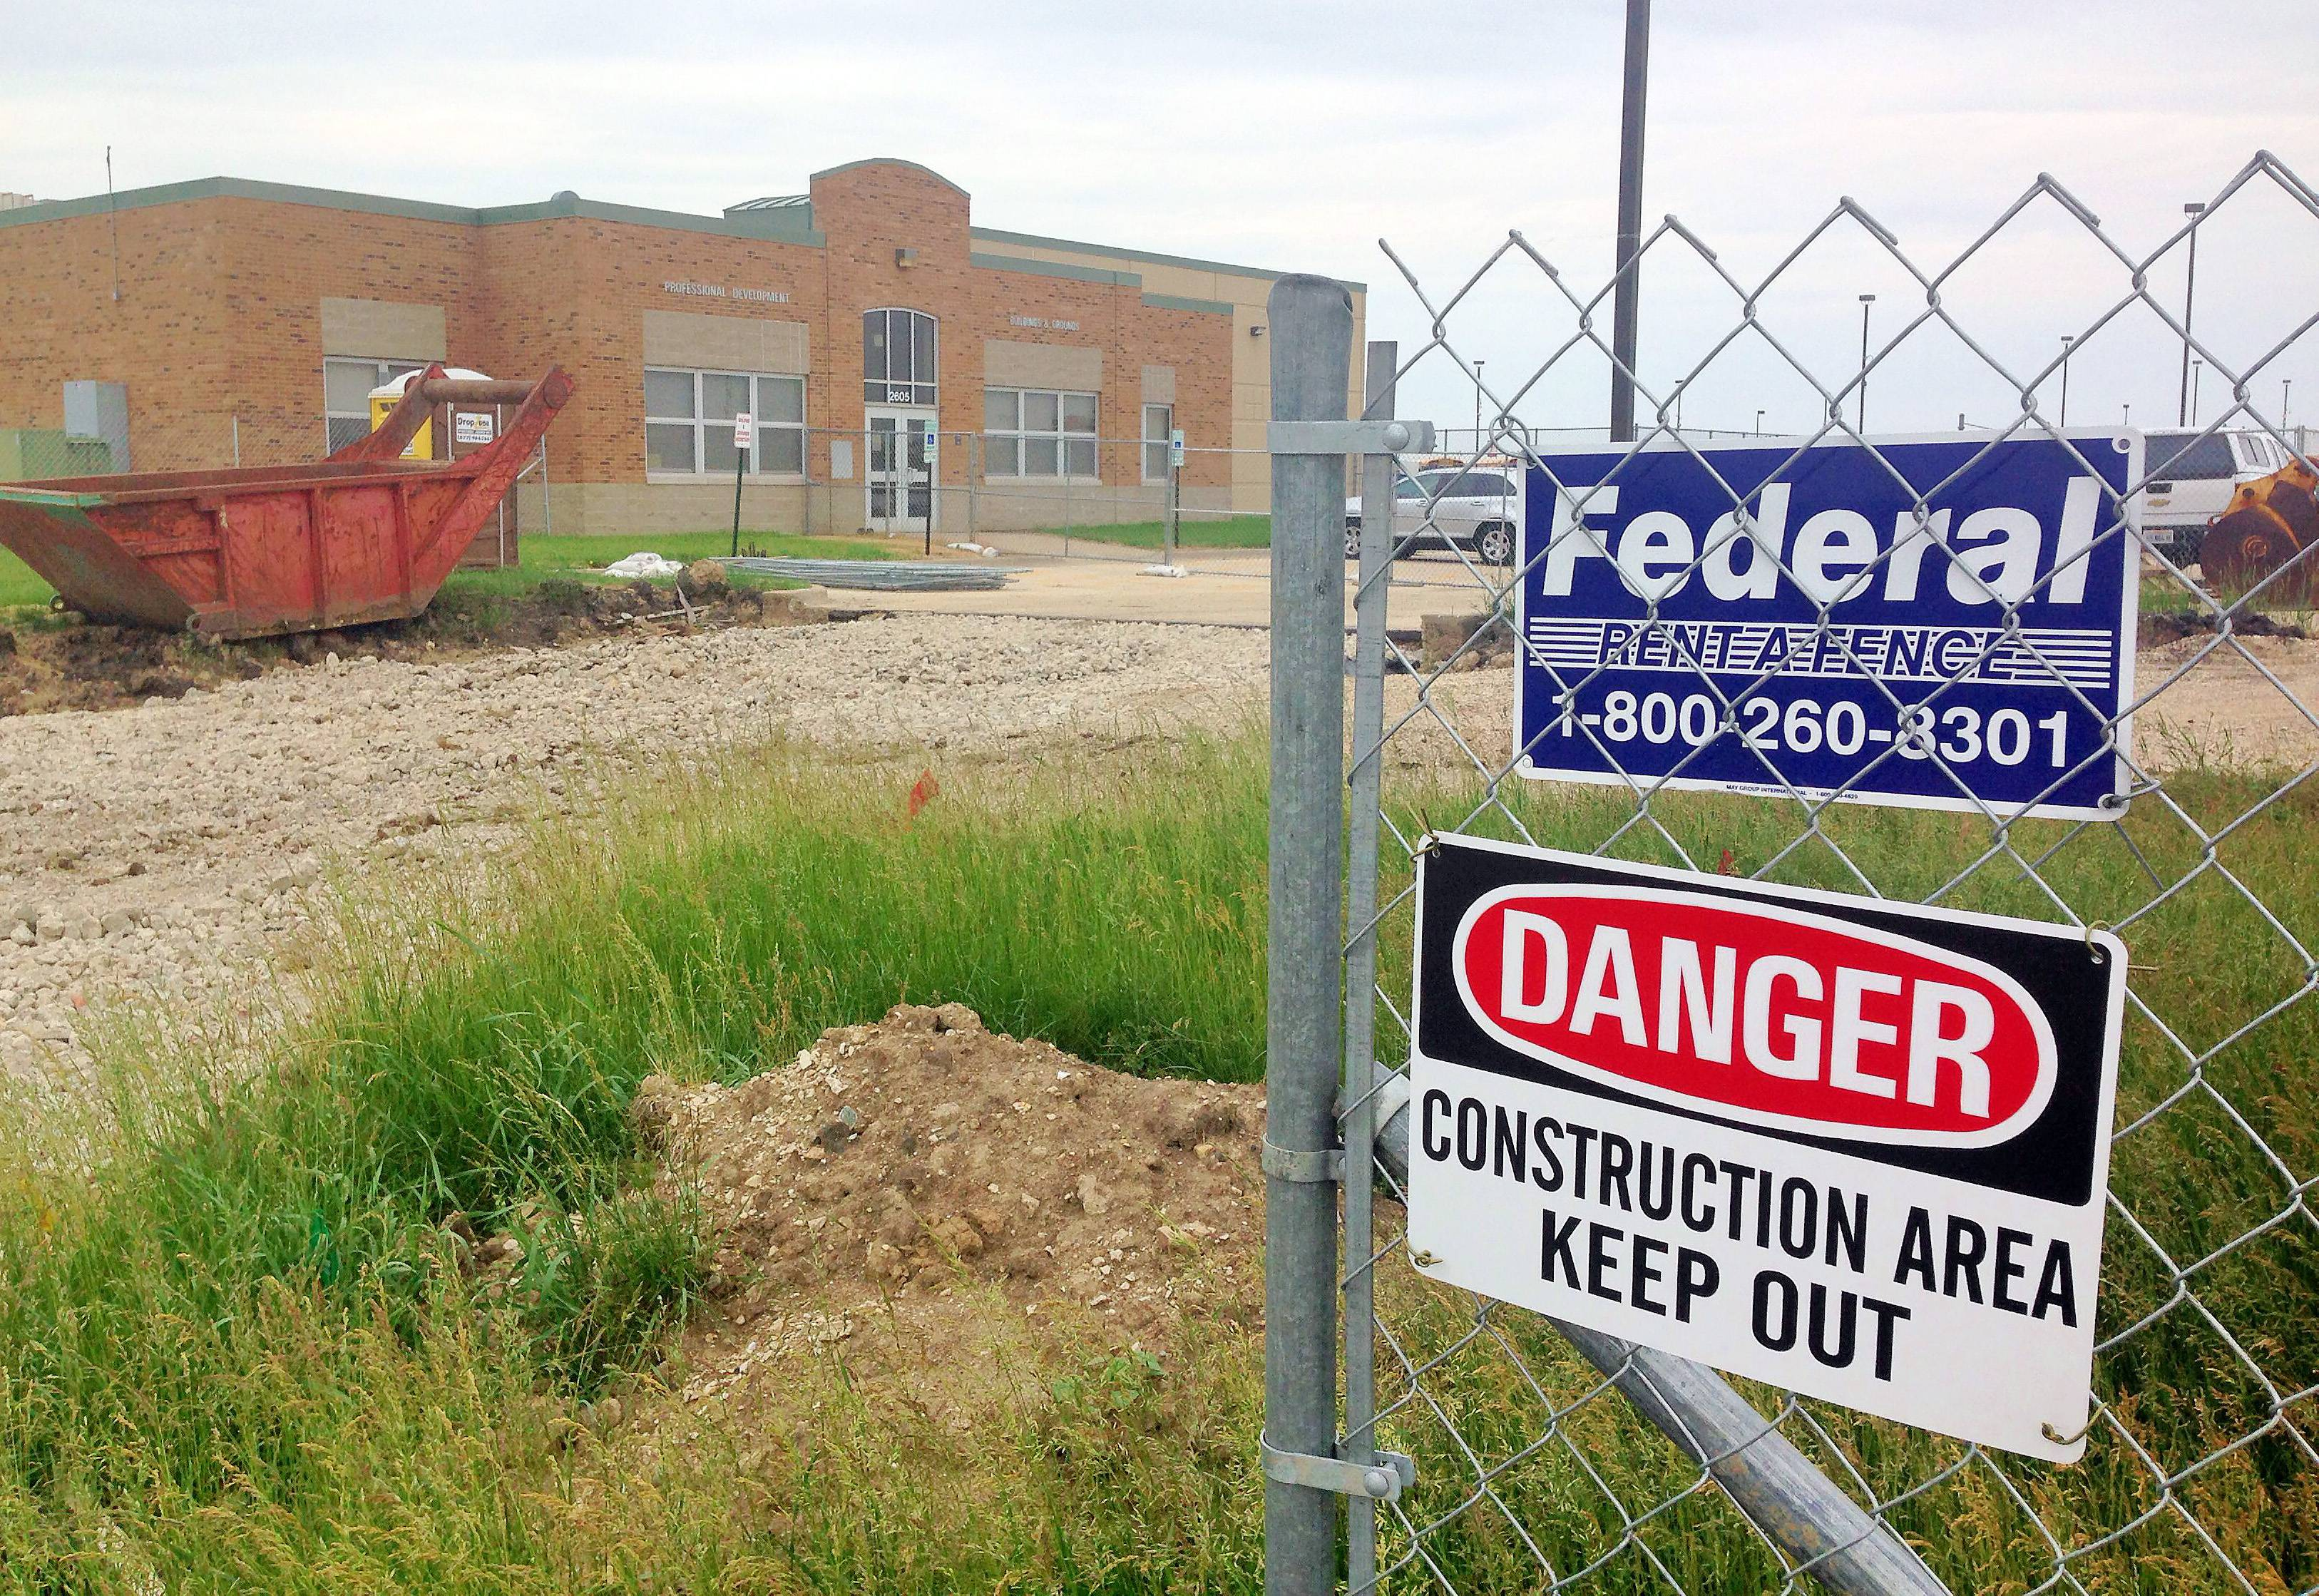 Fred Heid, chief executive officer of Community Unit District 300, is leading an effort to name the $3.9 million administration building now under construction in Algonquin.